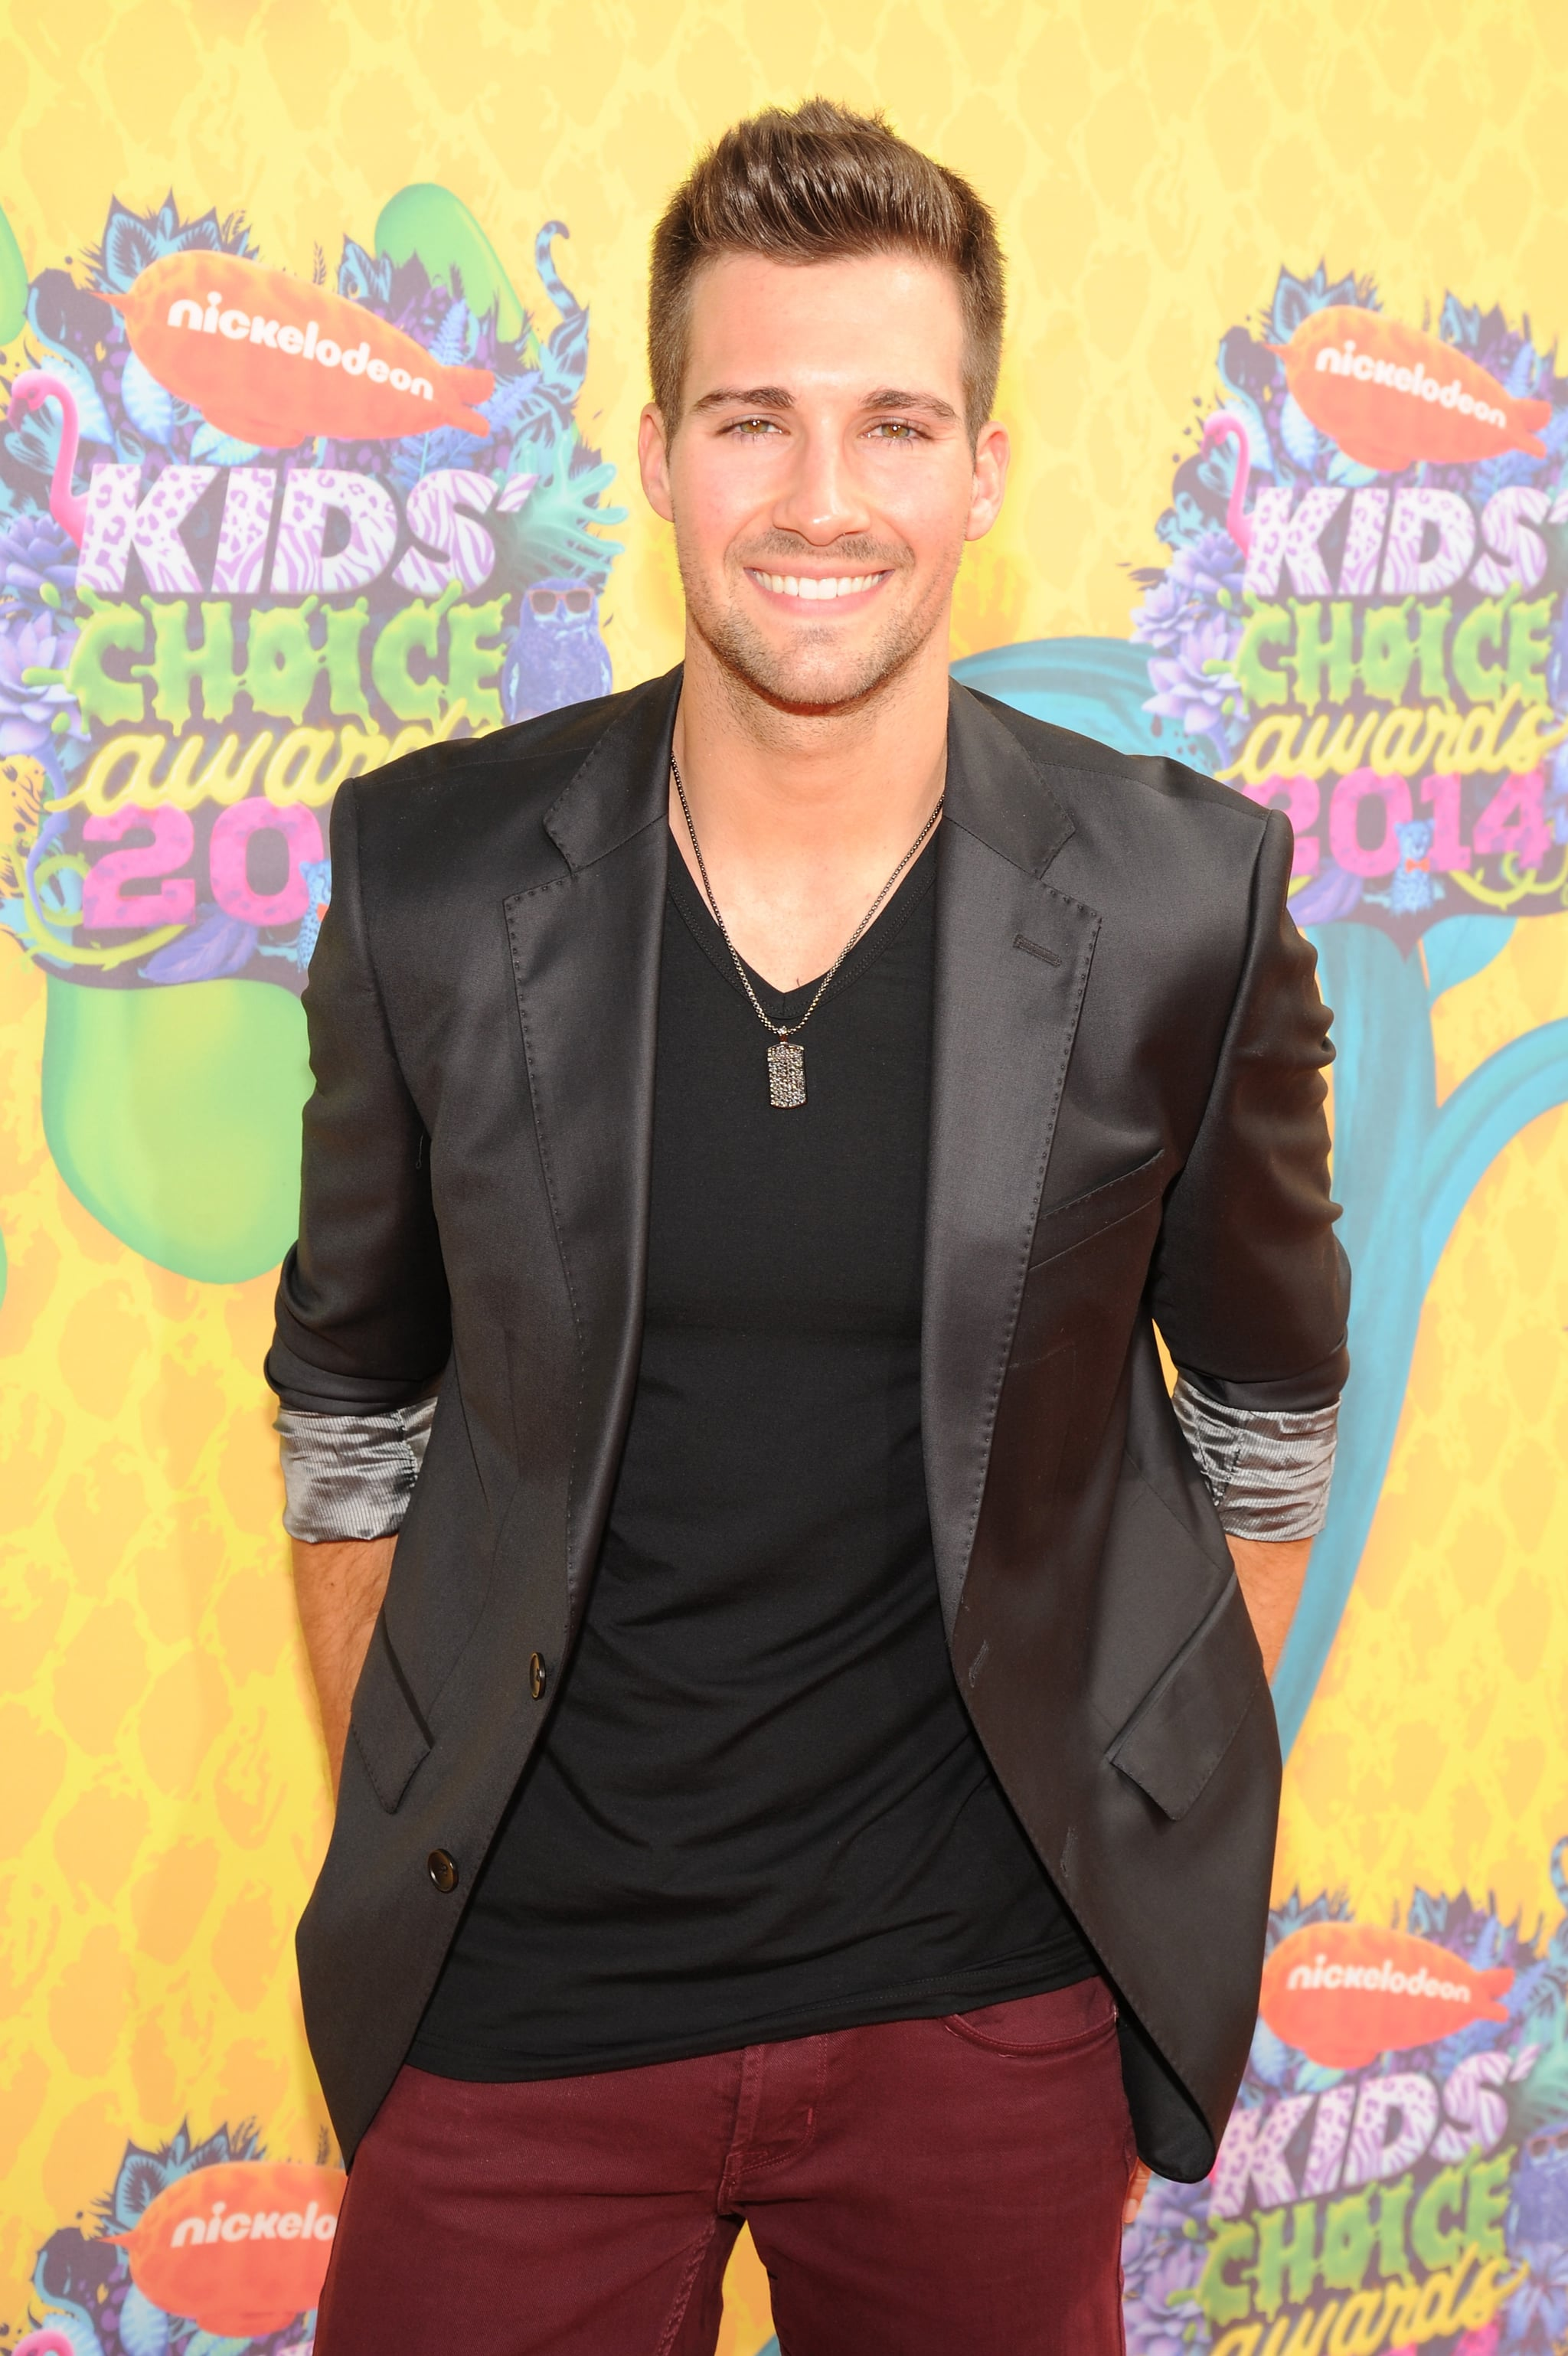 Nickelodeon alum and Dancing With the Stars contestant James Maslow flashed his smile.